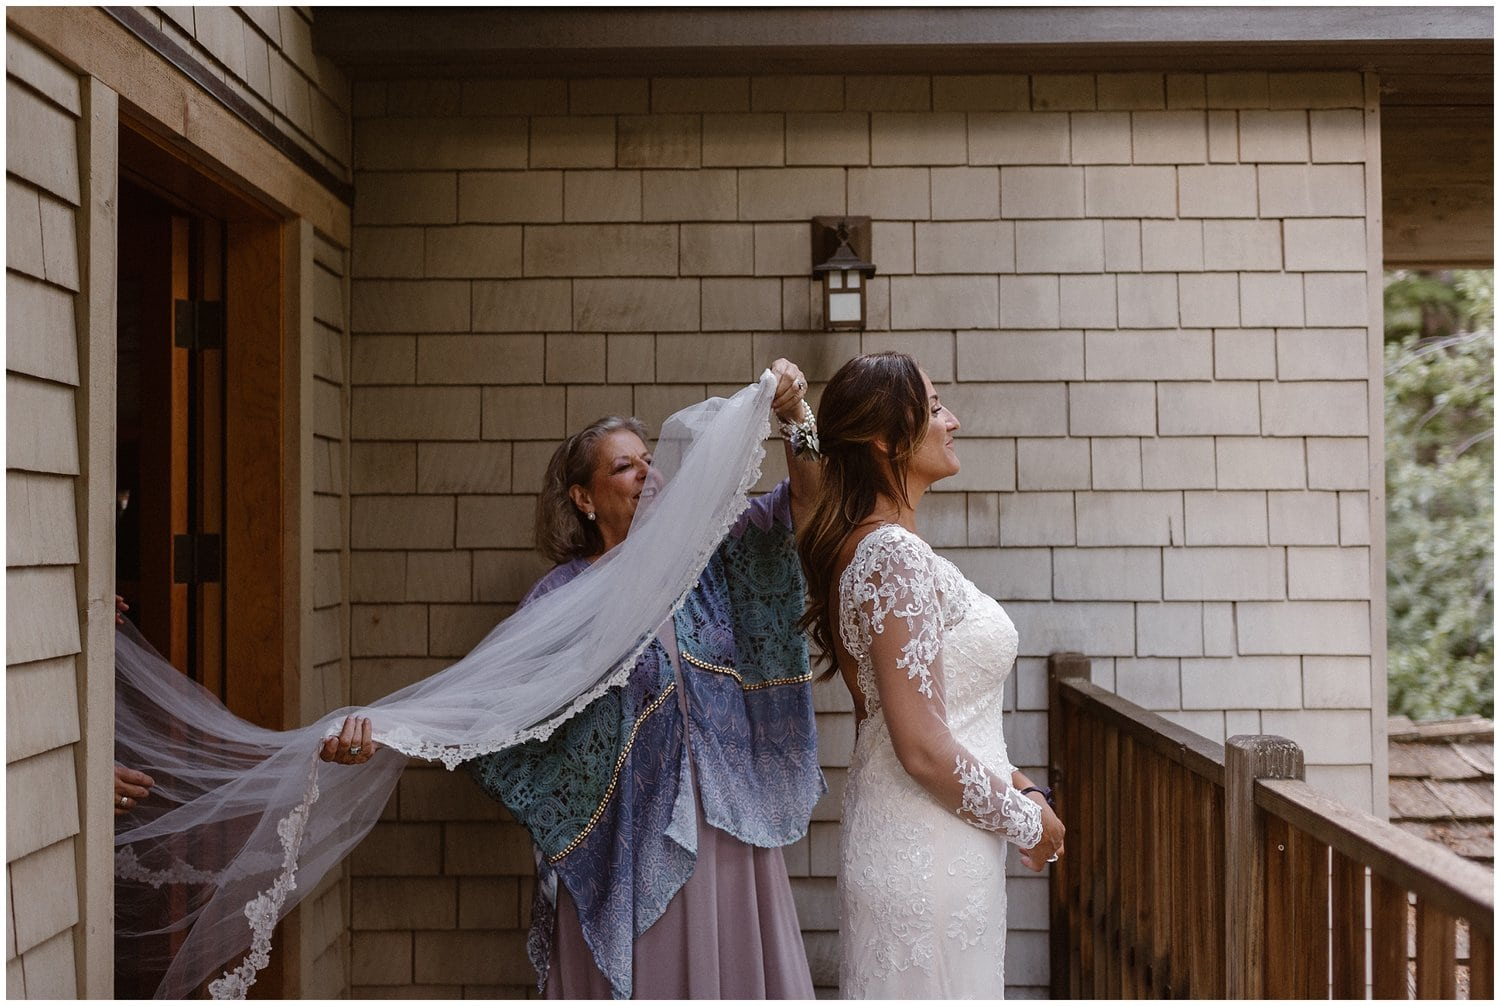 A bride stands on a balcony while a woman helps put on her wedding veil.